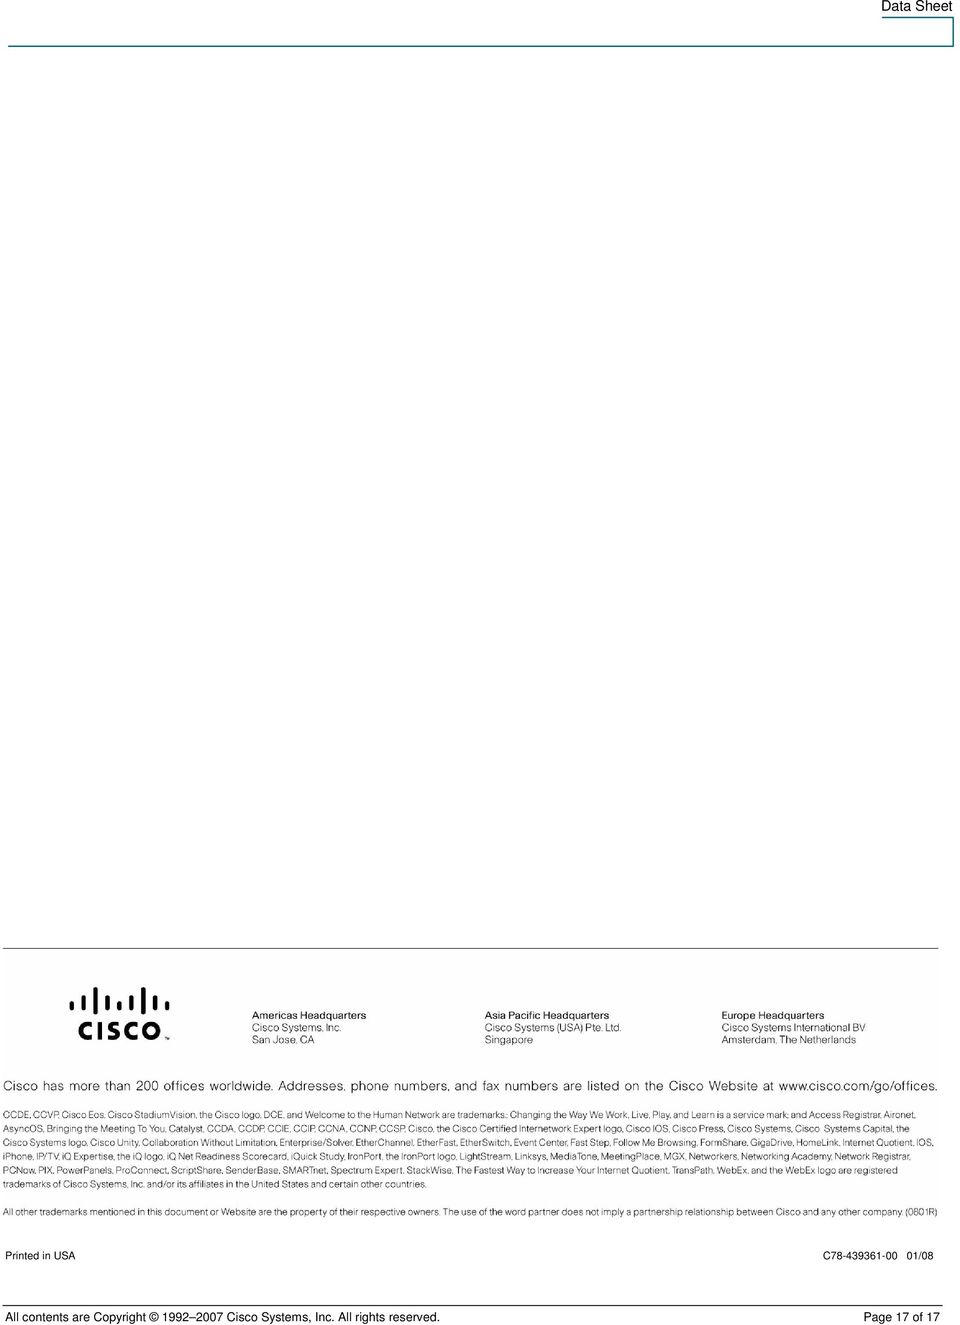 Copyright 1992 2007 Cisco